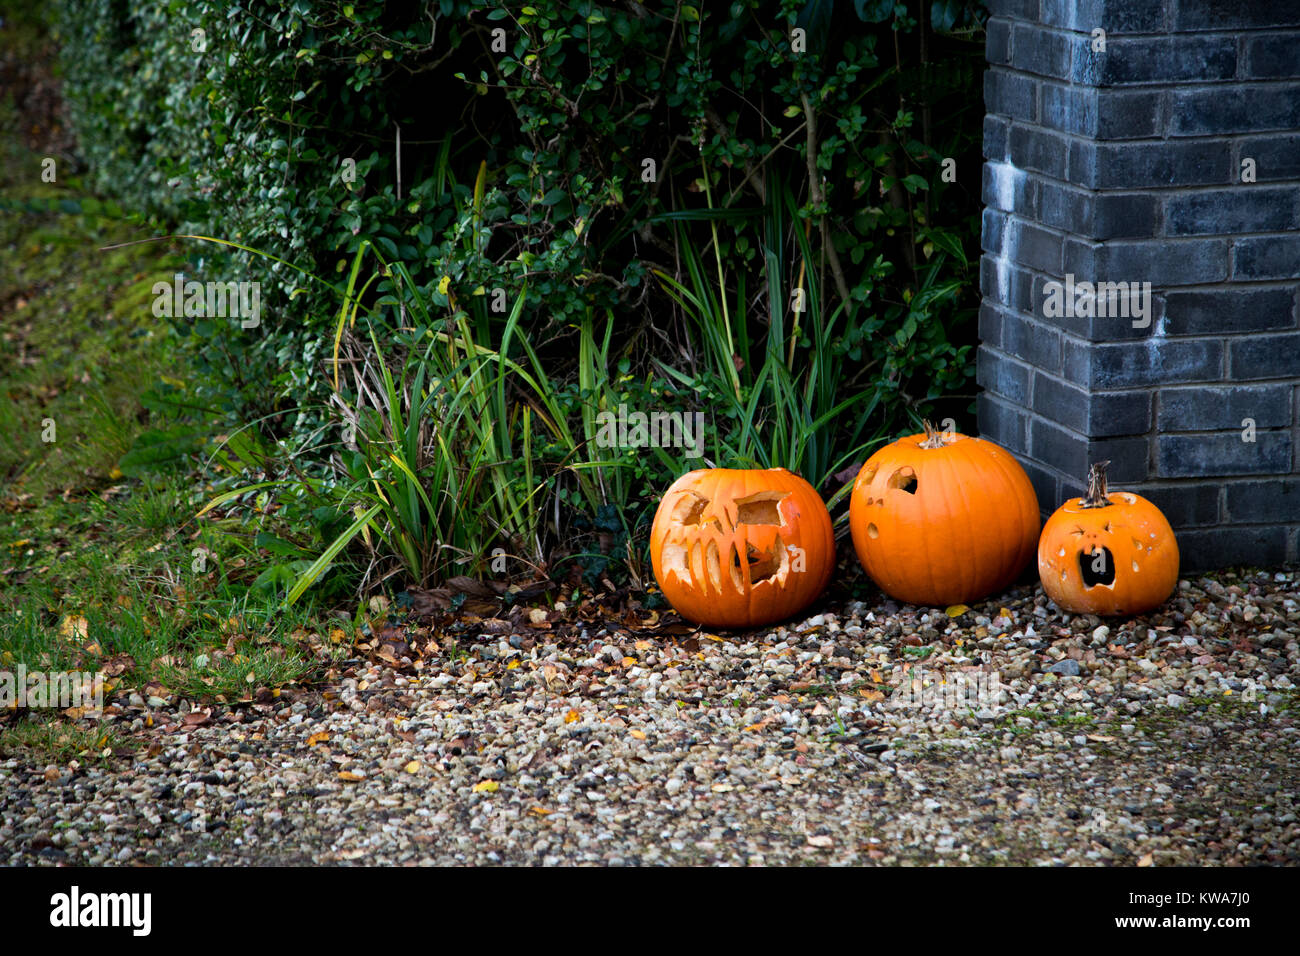 Three carved pumpkins in daylight - Stock Image